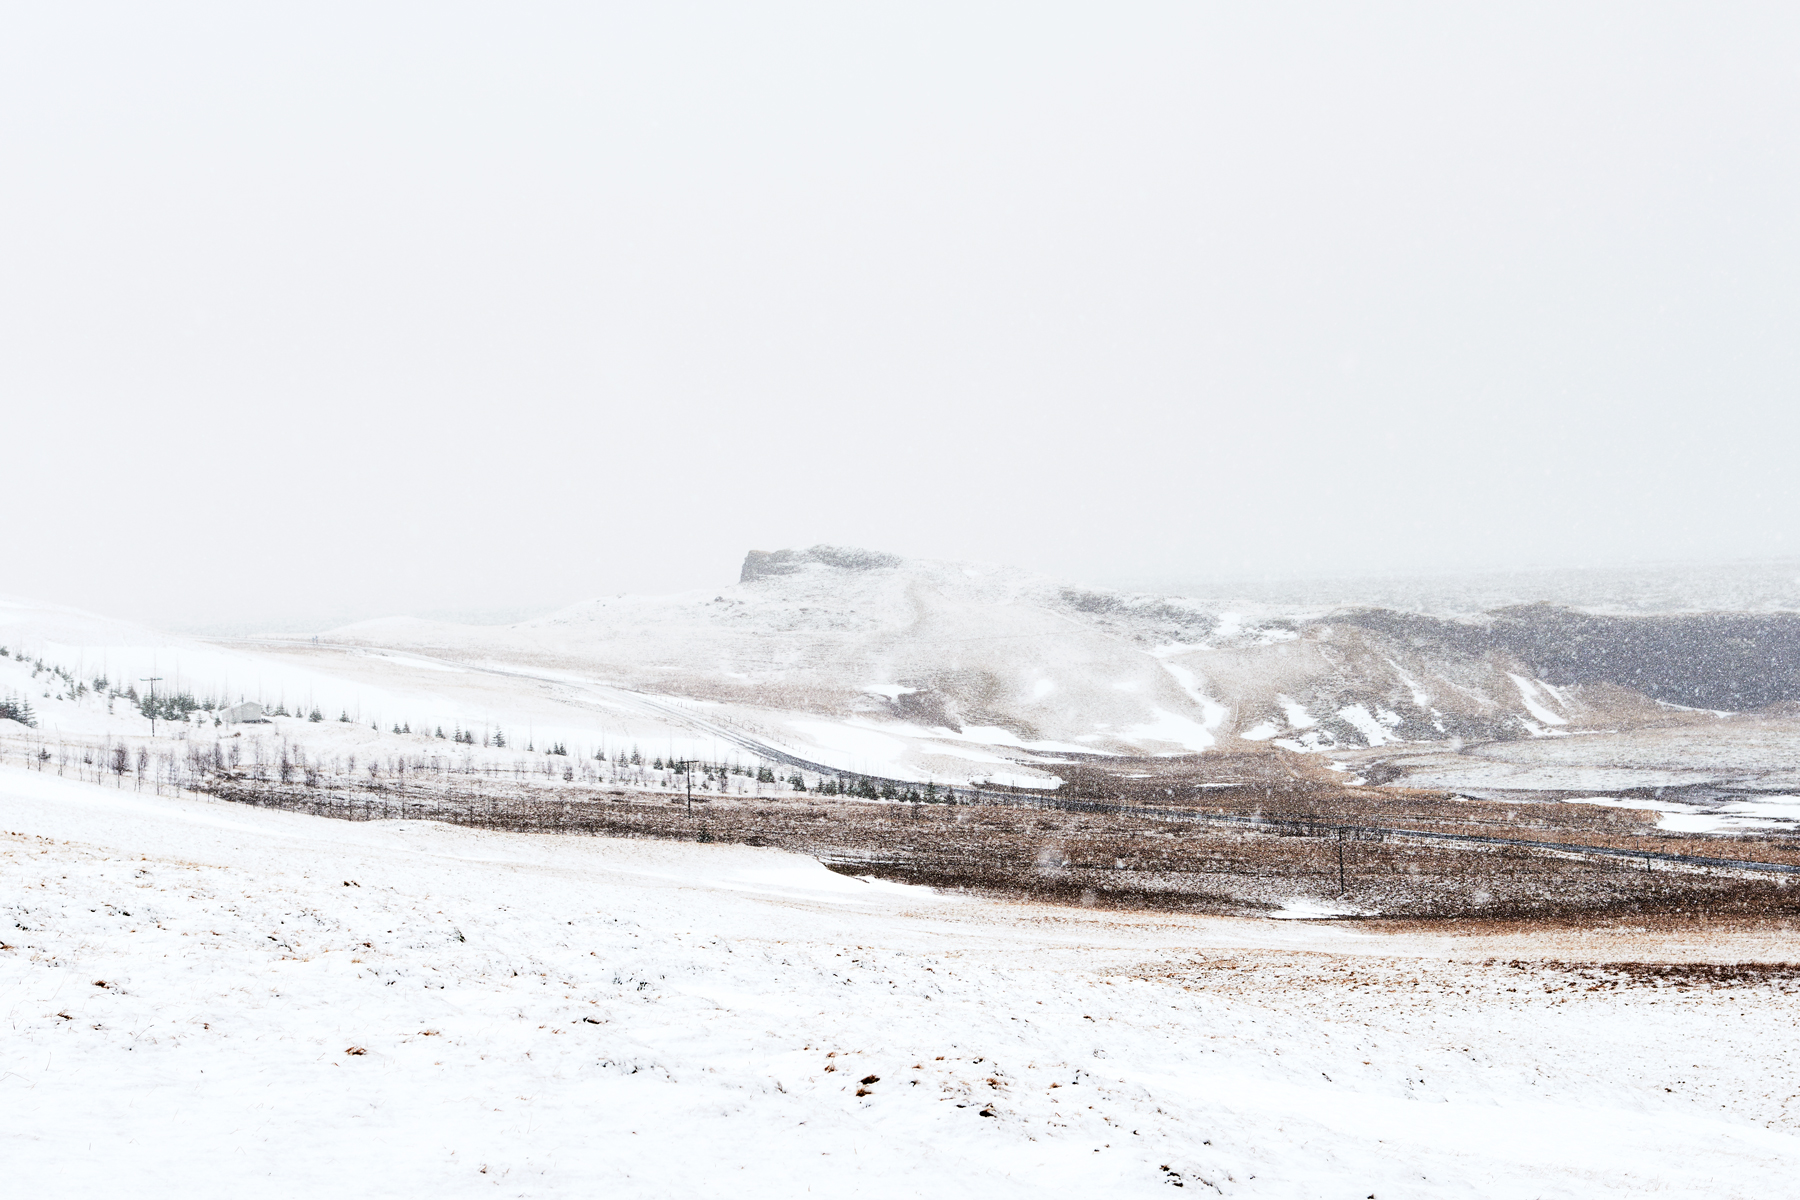 Snow covered landscape in South Iceland. Kirsty Owen Photography.